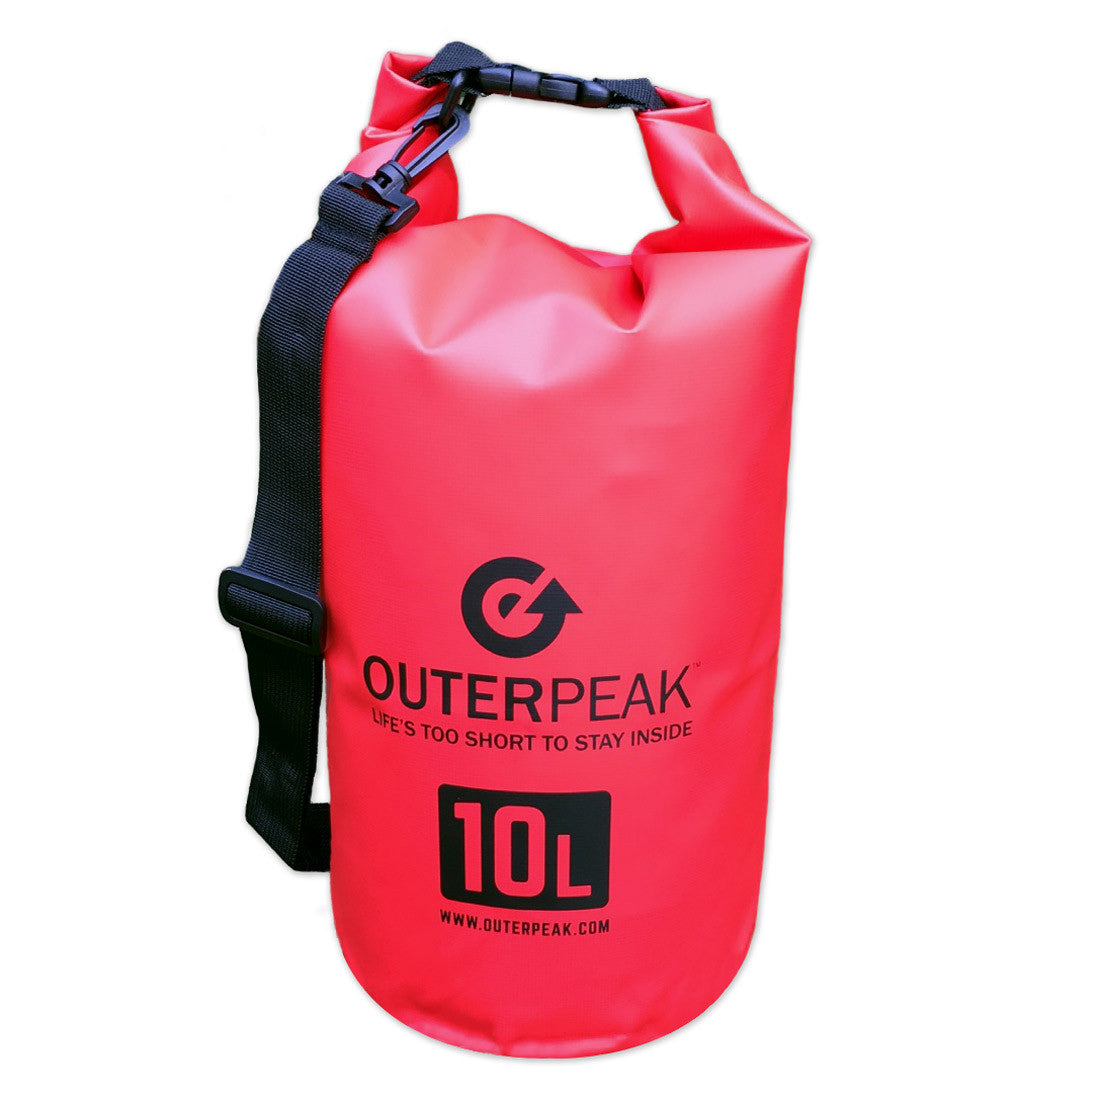 OuterPeak 10L Waterproof Dry Bag with Shoulder Strap